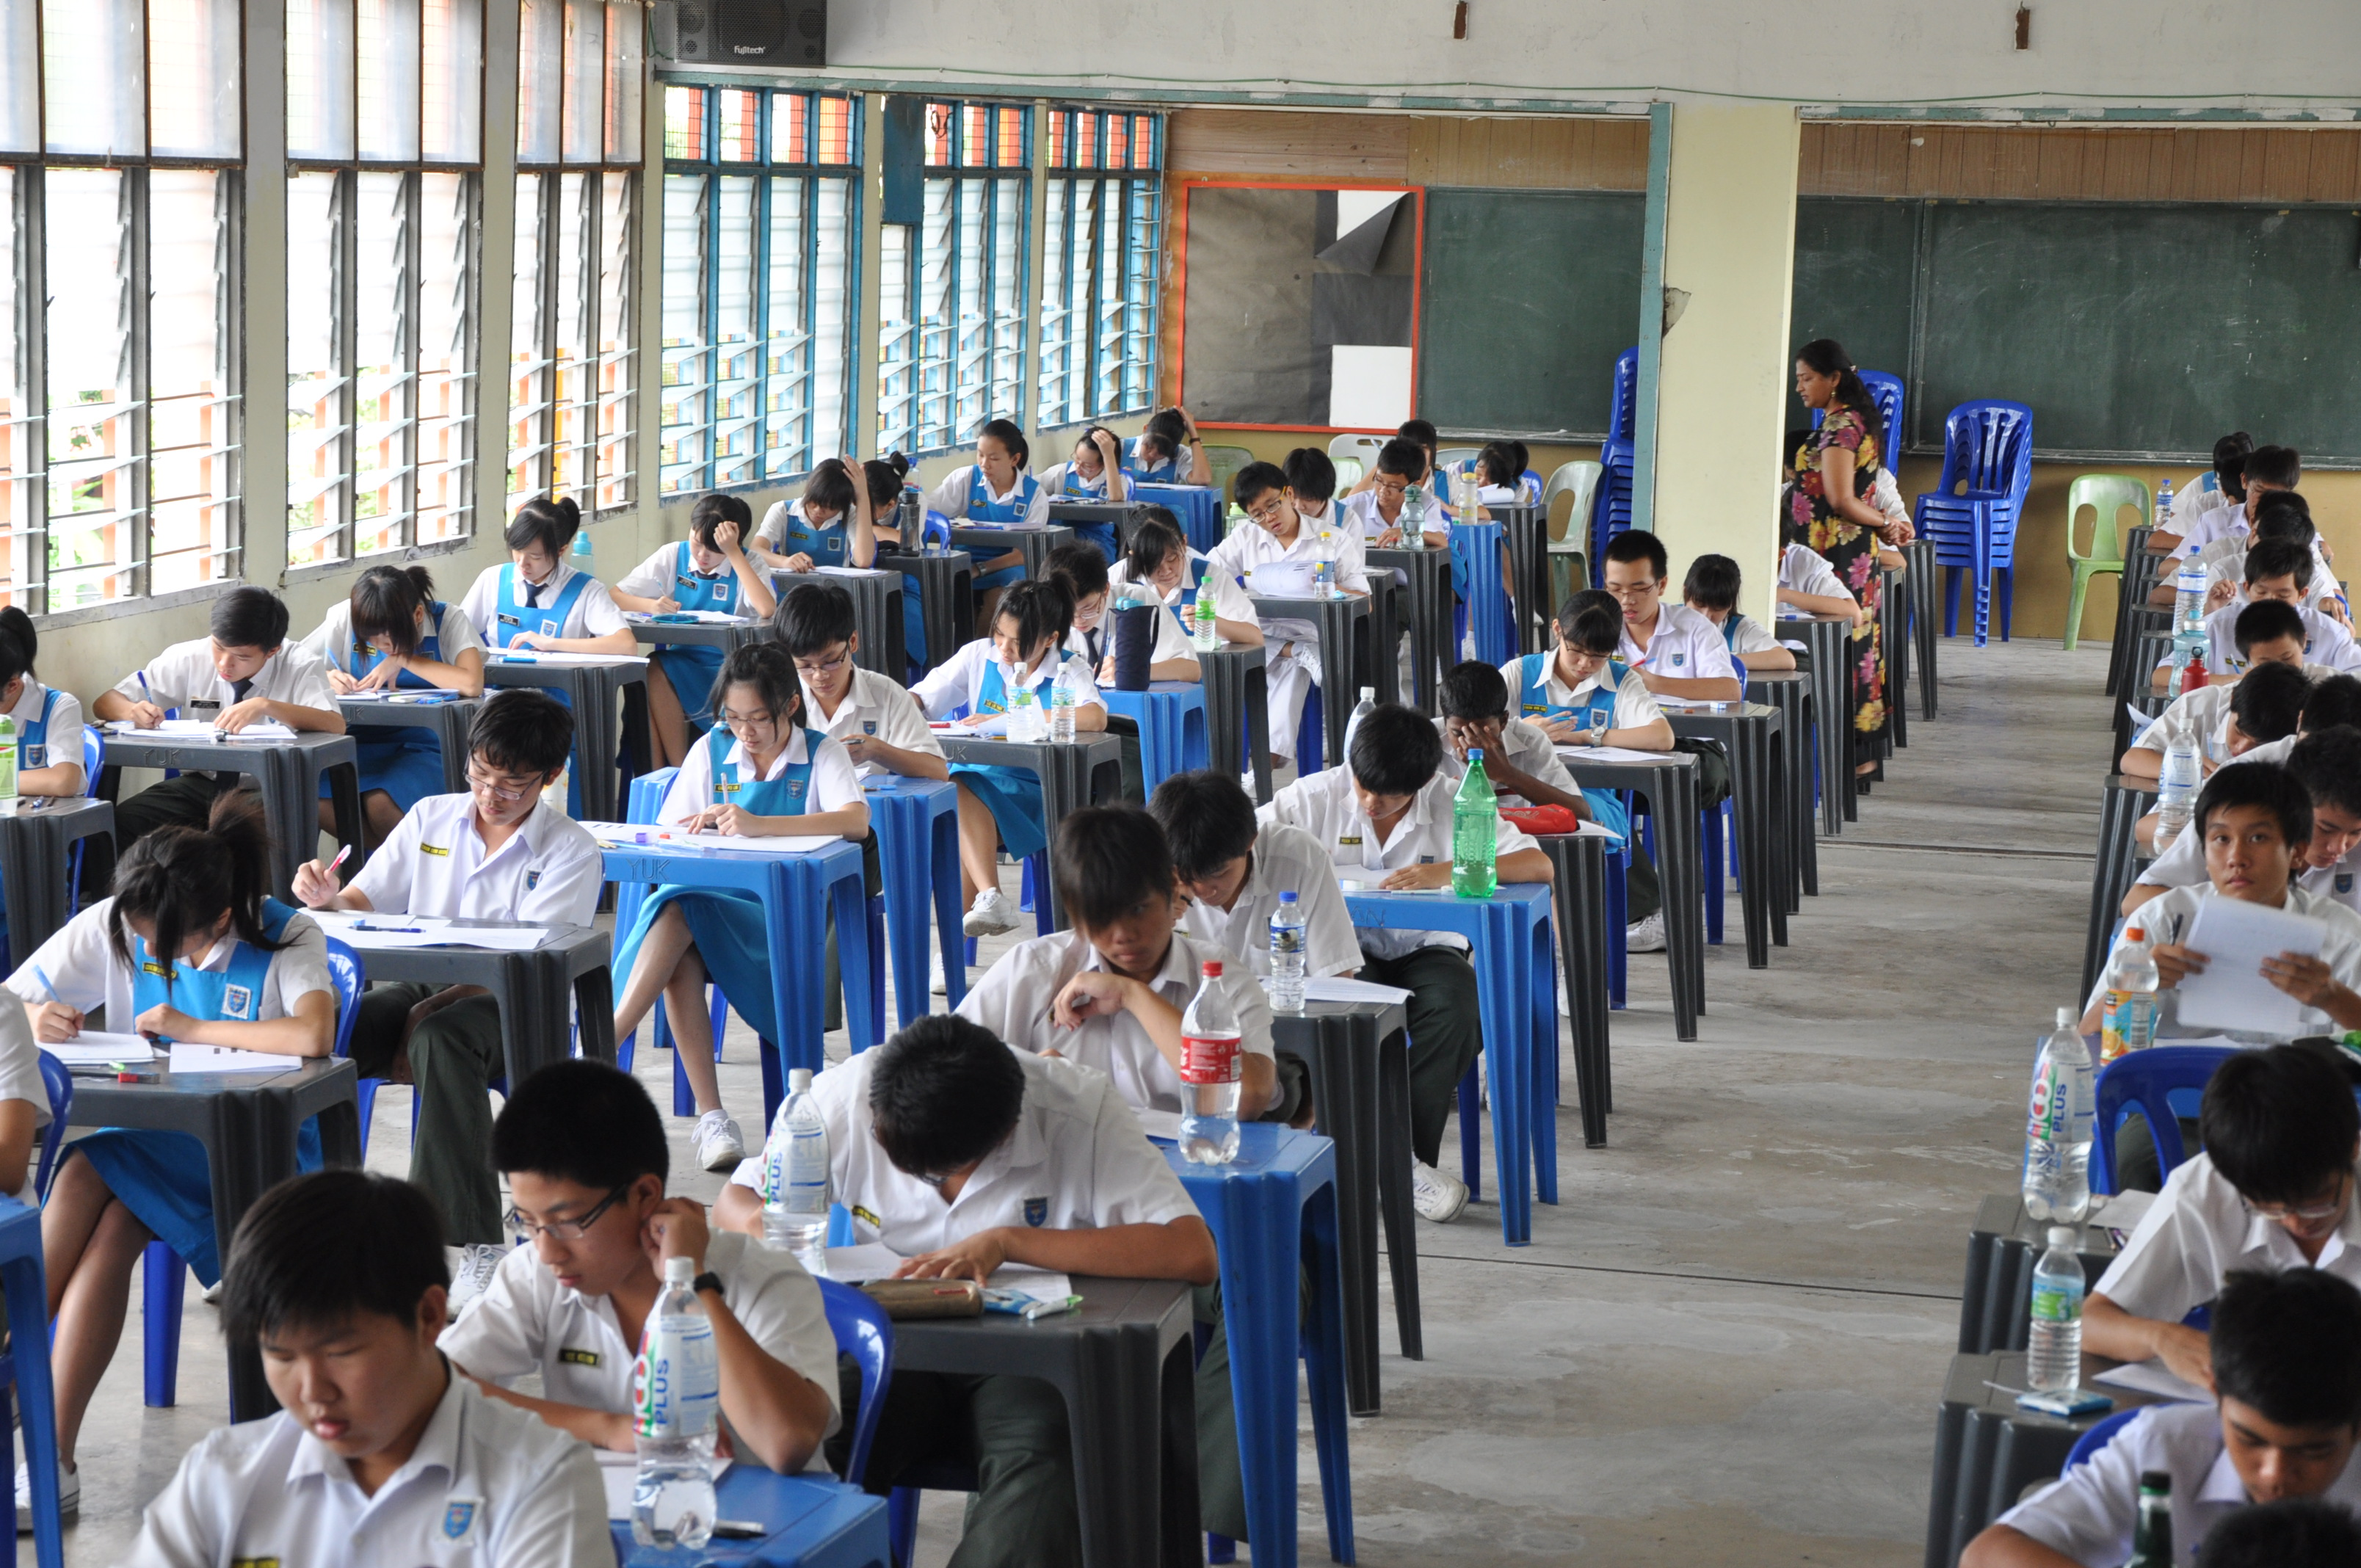 The Penilaian Menengah Rendah (PMR) Examination For Form Three Students Was Last Held In 2013